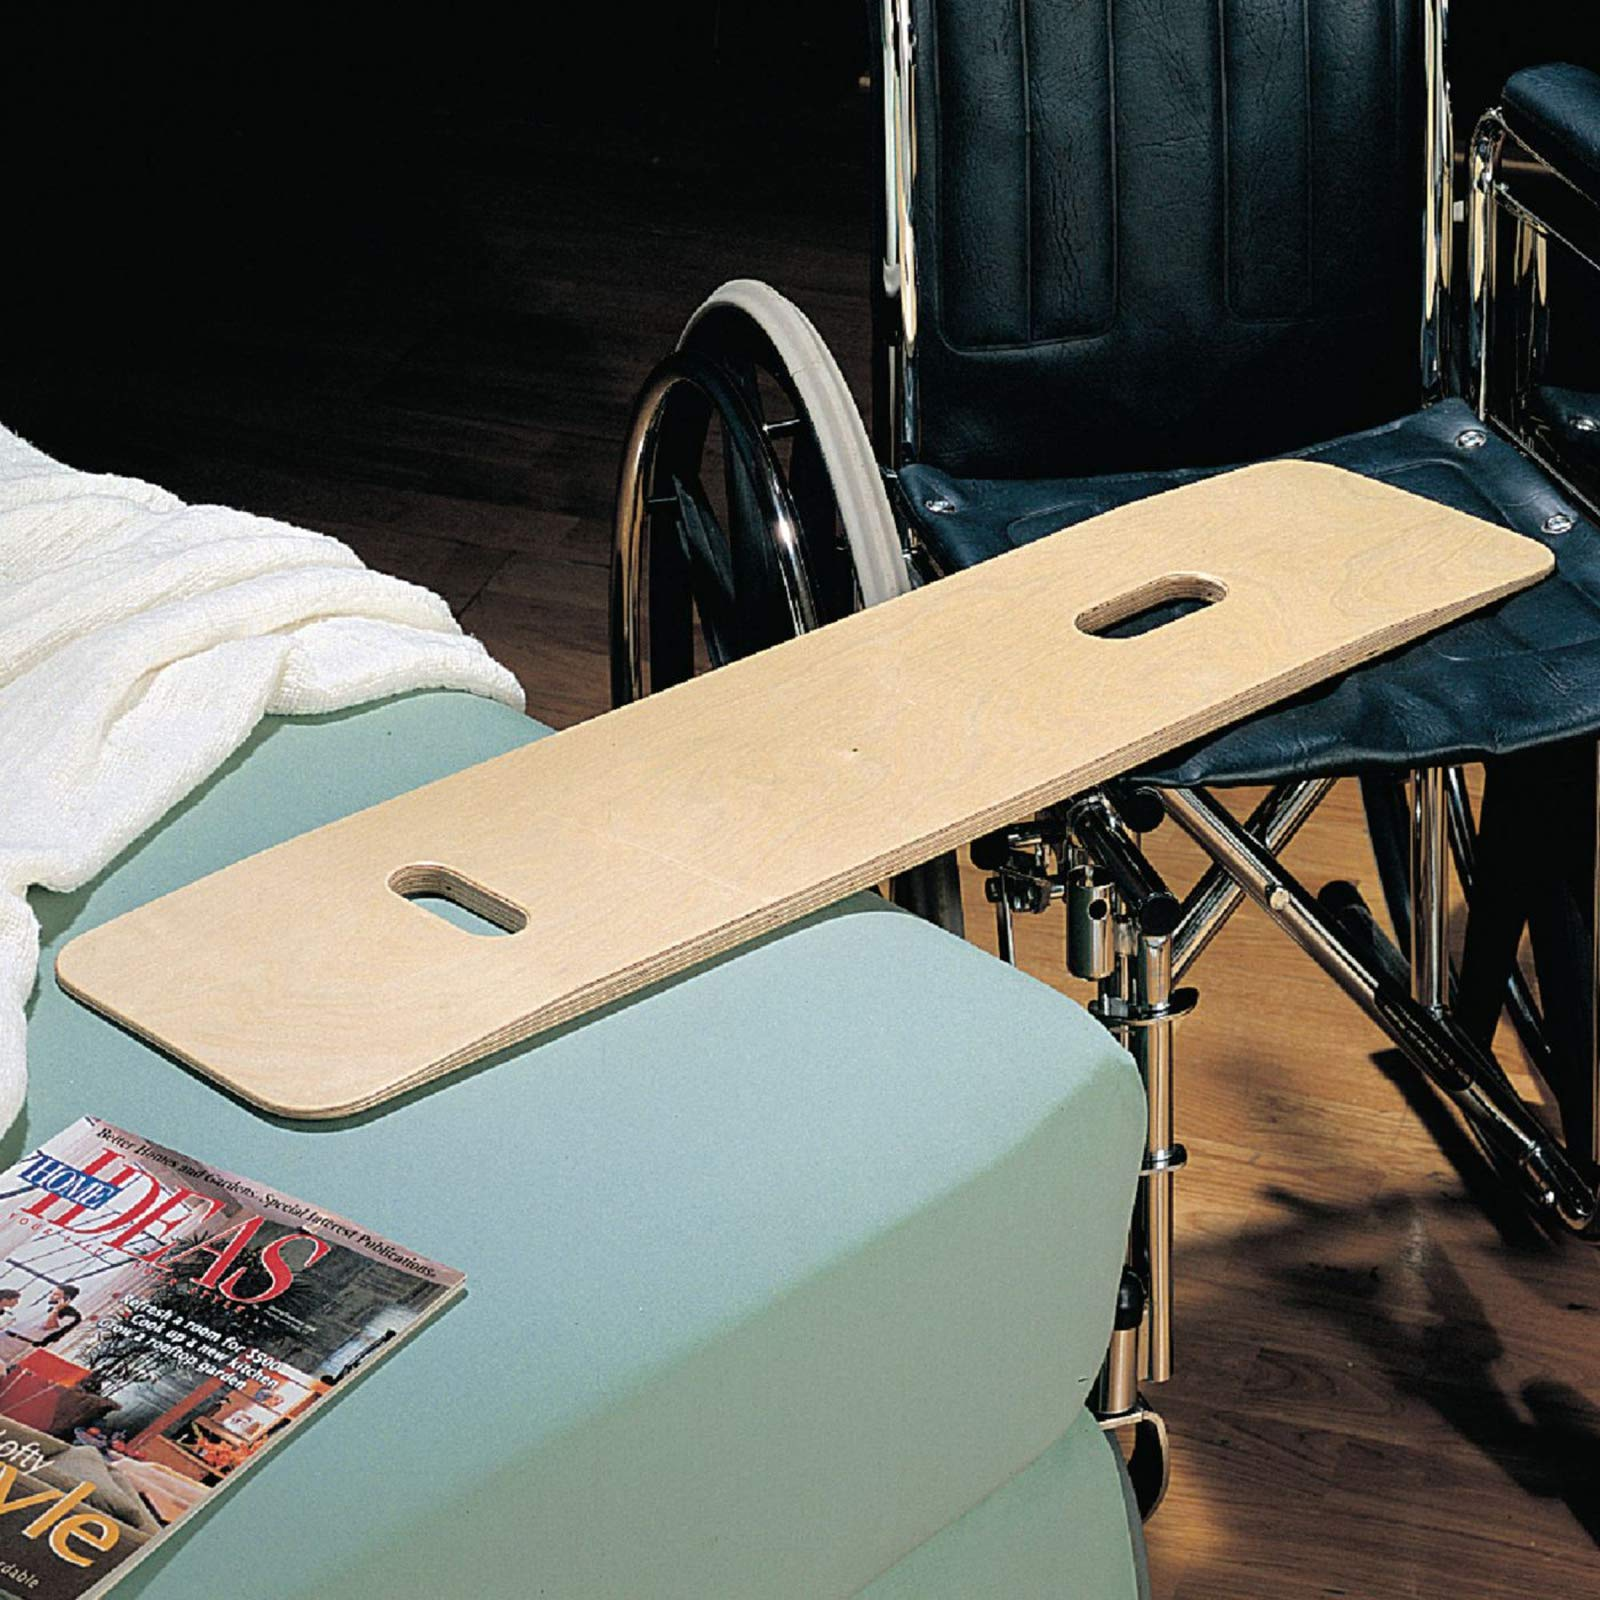 Sammons Preston Bariatric Transfer Board for Wheelchair Users, Wooden Slide Board with Handles, 35'' Long & Strong Wood Slider Board with 600 lbs. Capacity by Sammons Preston (Image #4)